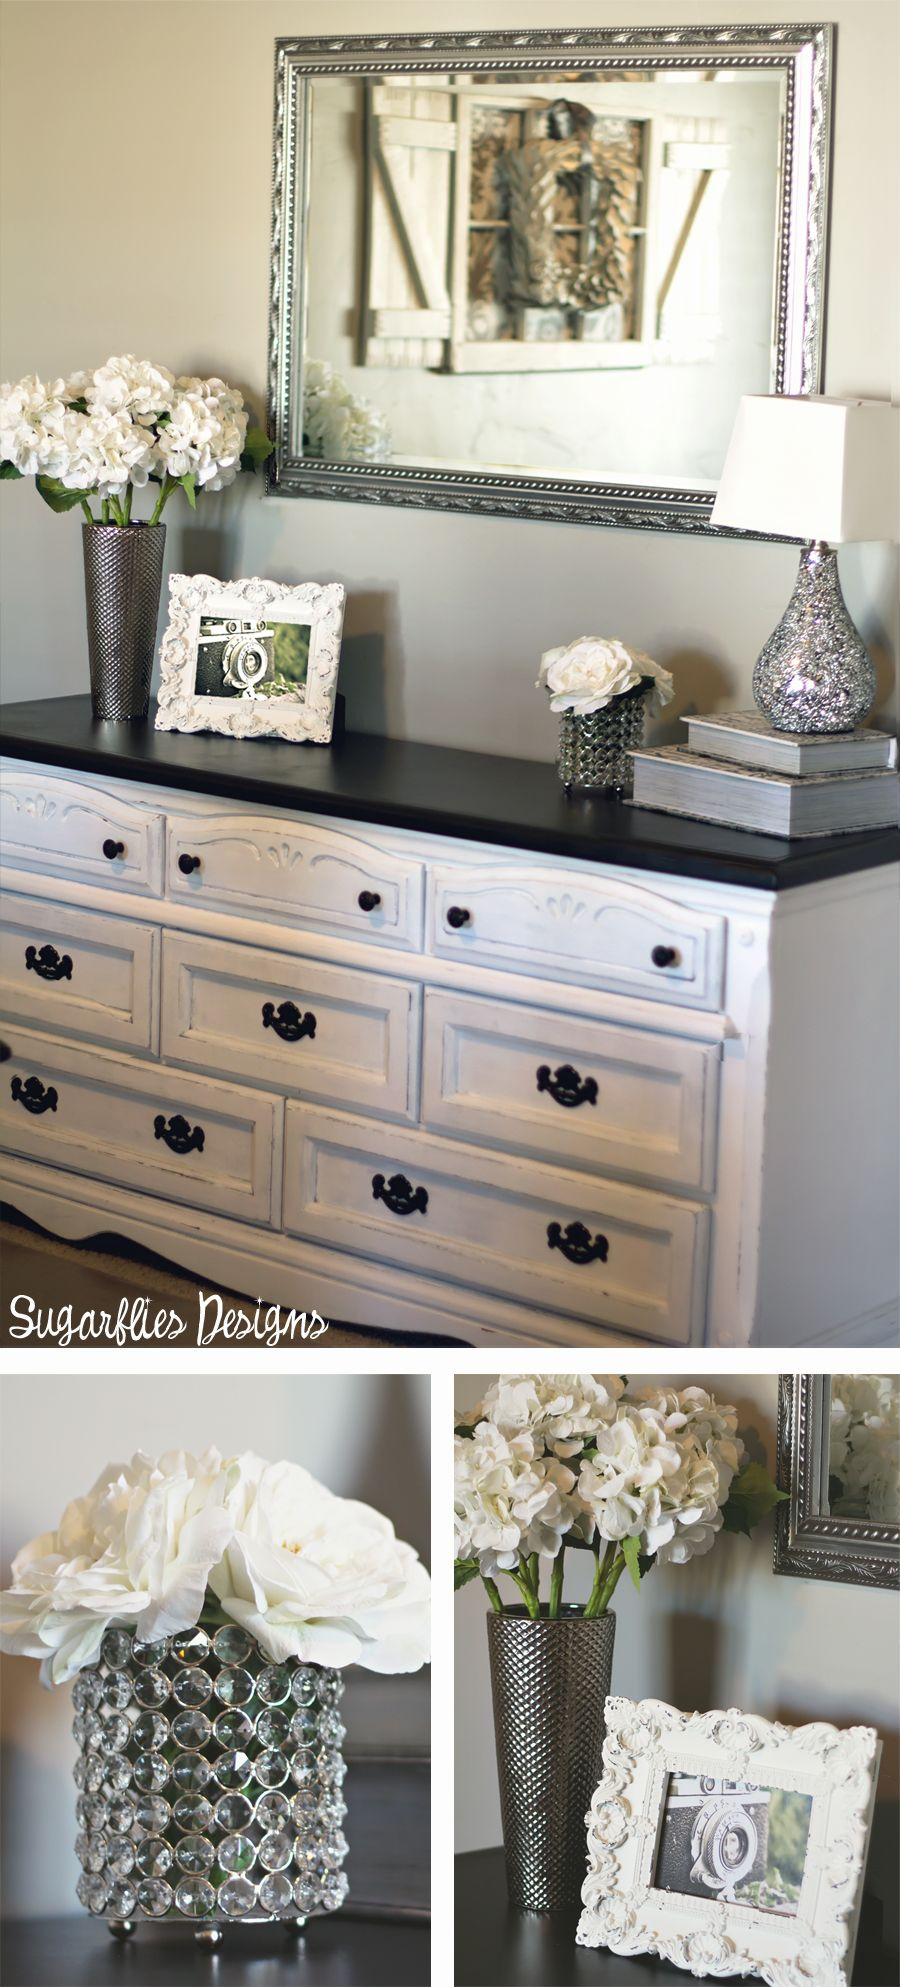 Sugarflies Designs  Home decor, Home bedroom, Dresser decor